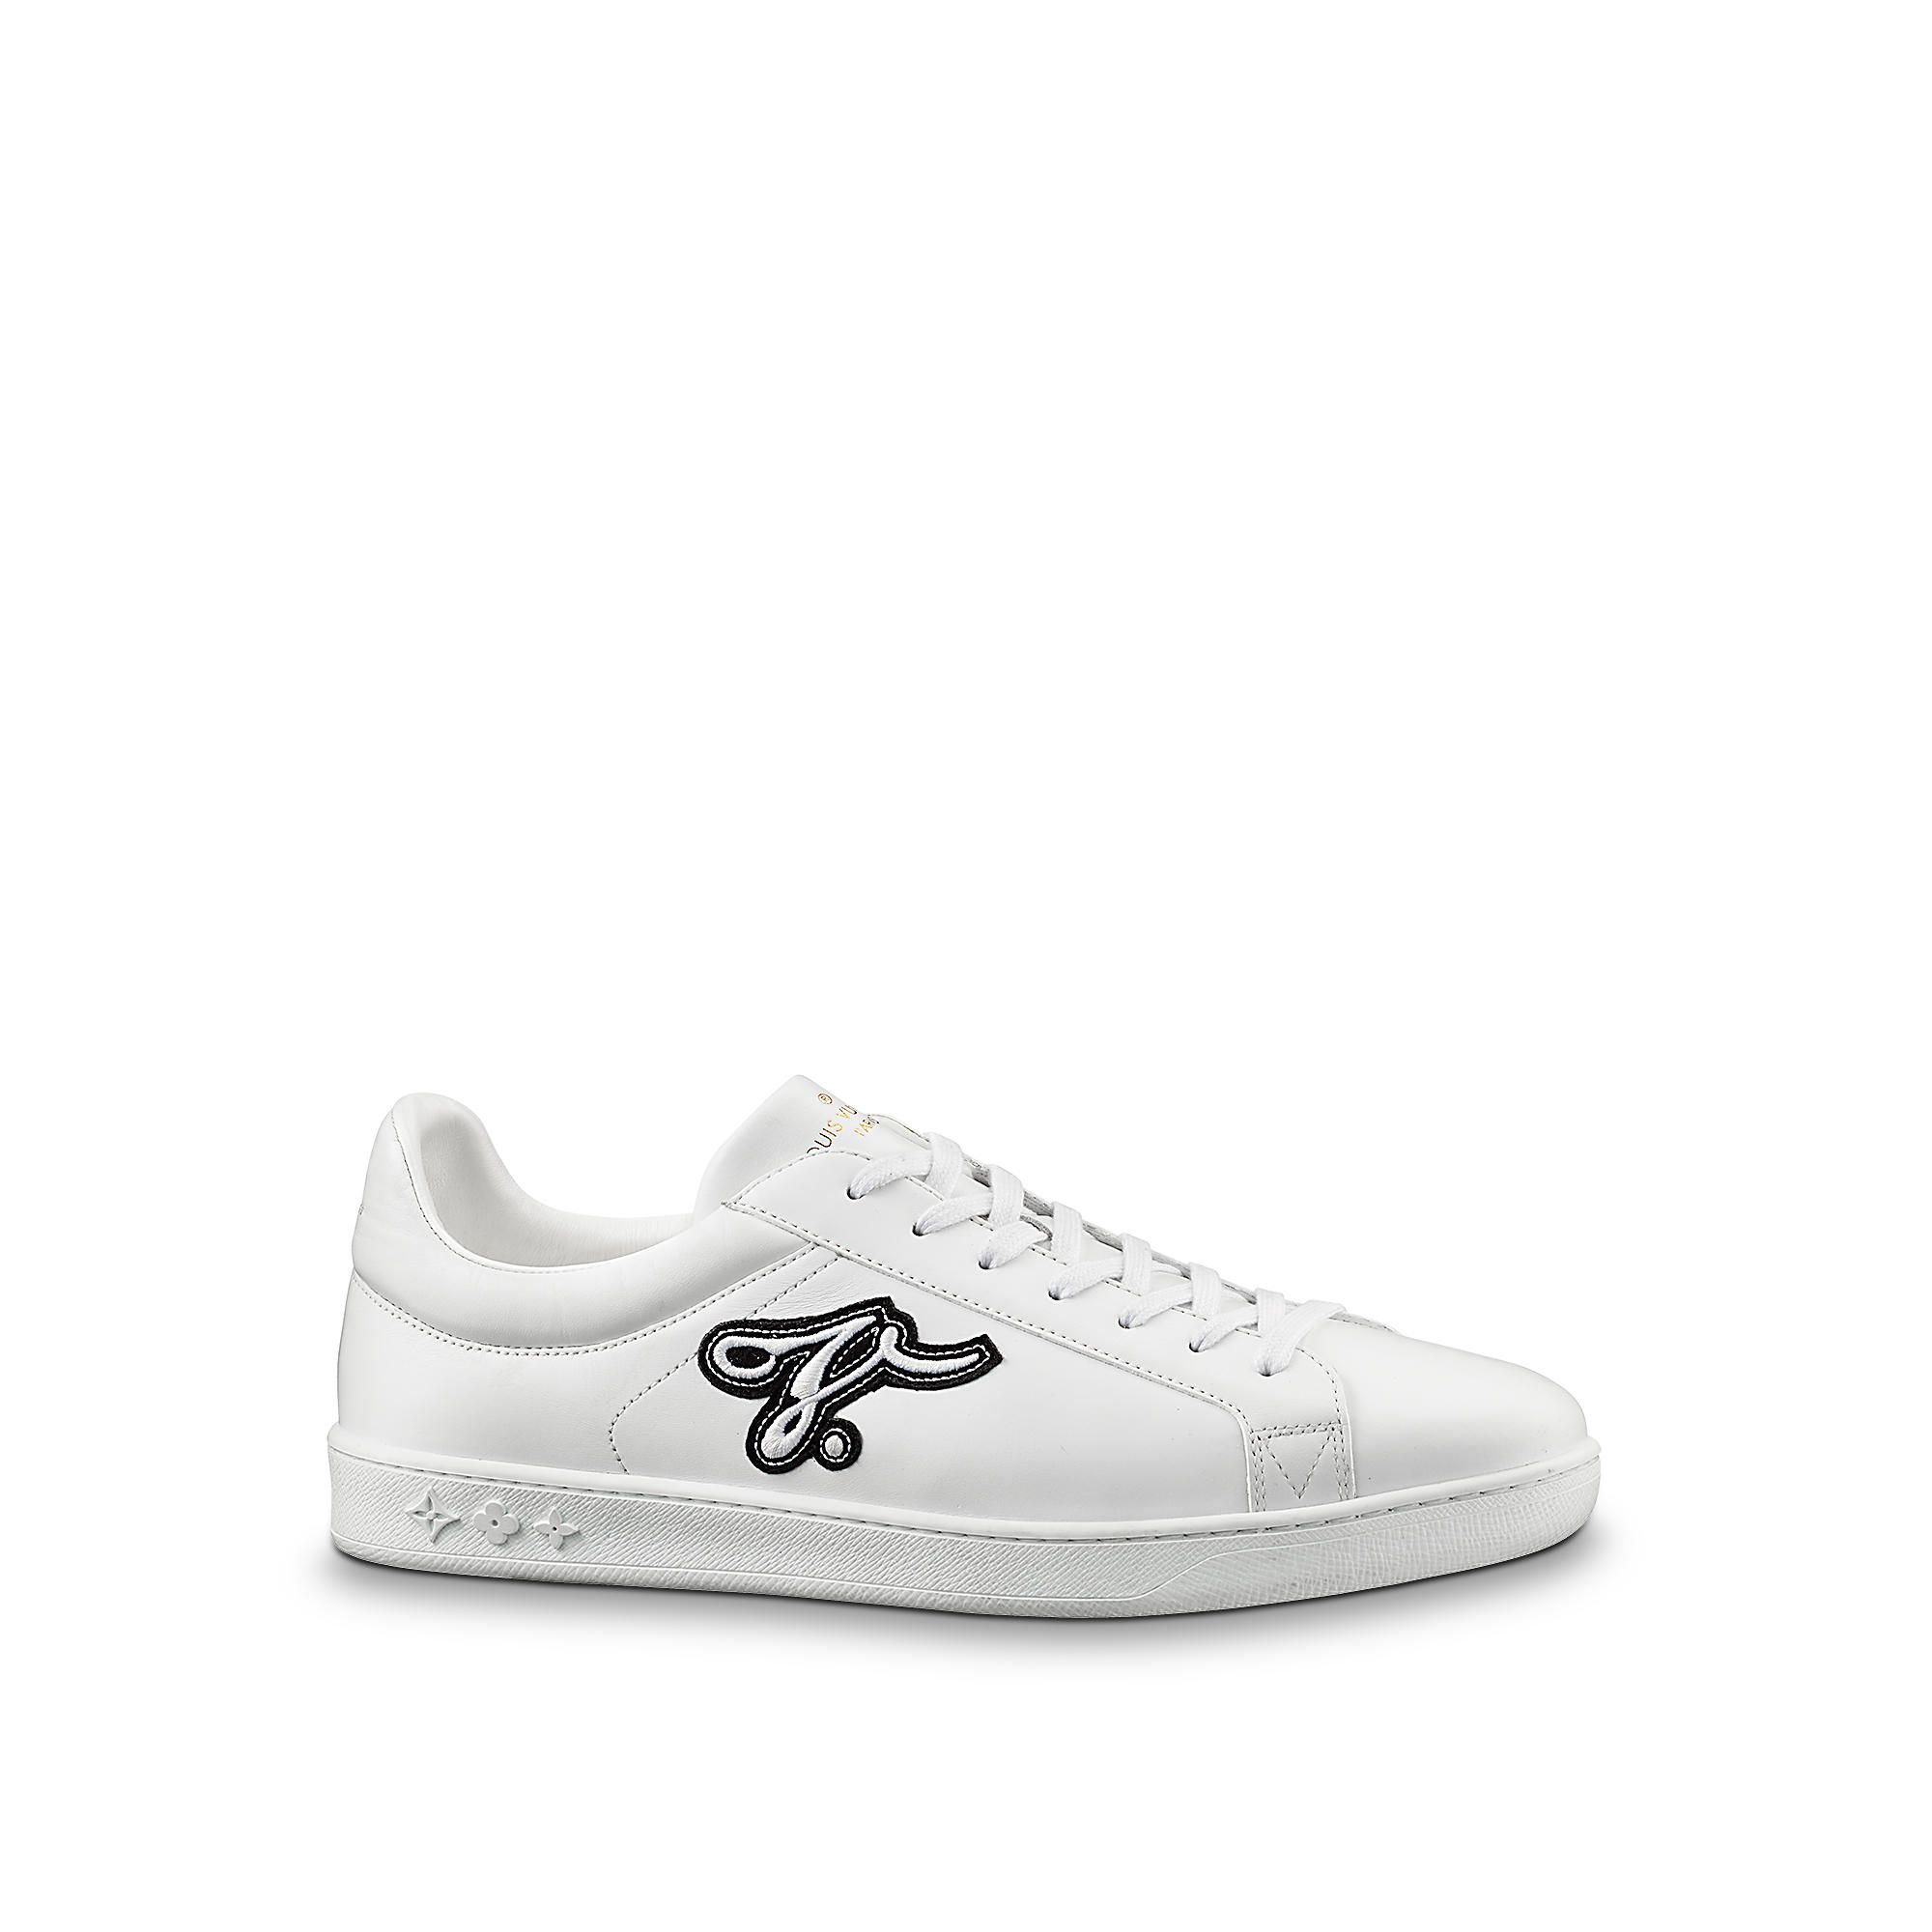 4f95b333162 Luxembourg Sneaker via Louis Vuitton | Casual Shoes in 2019 ...